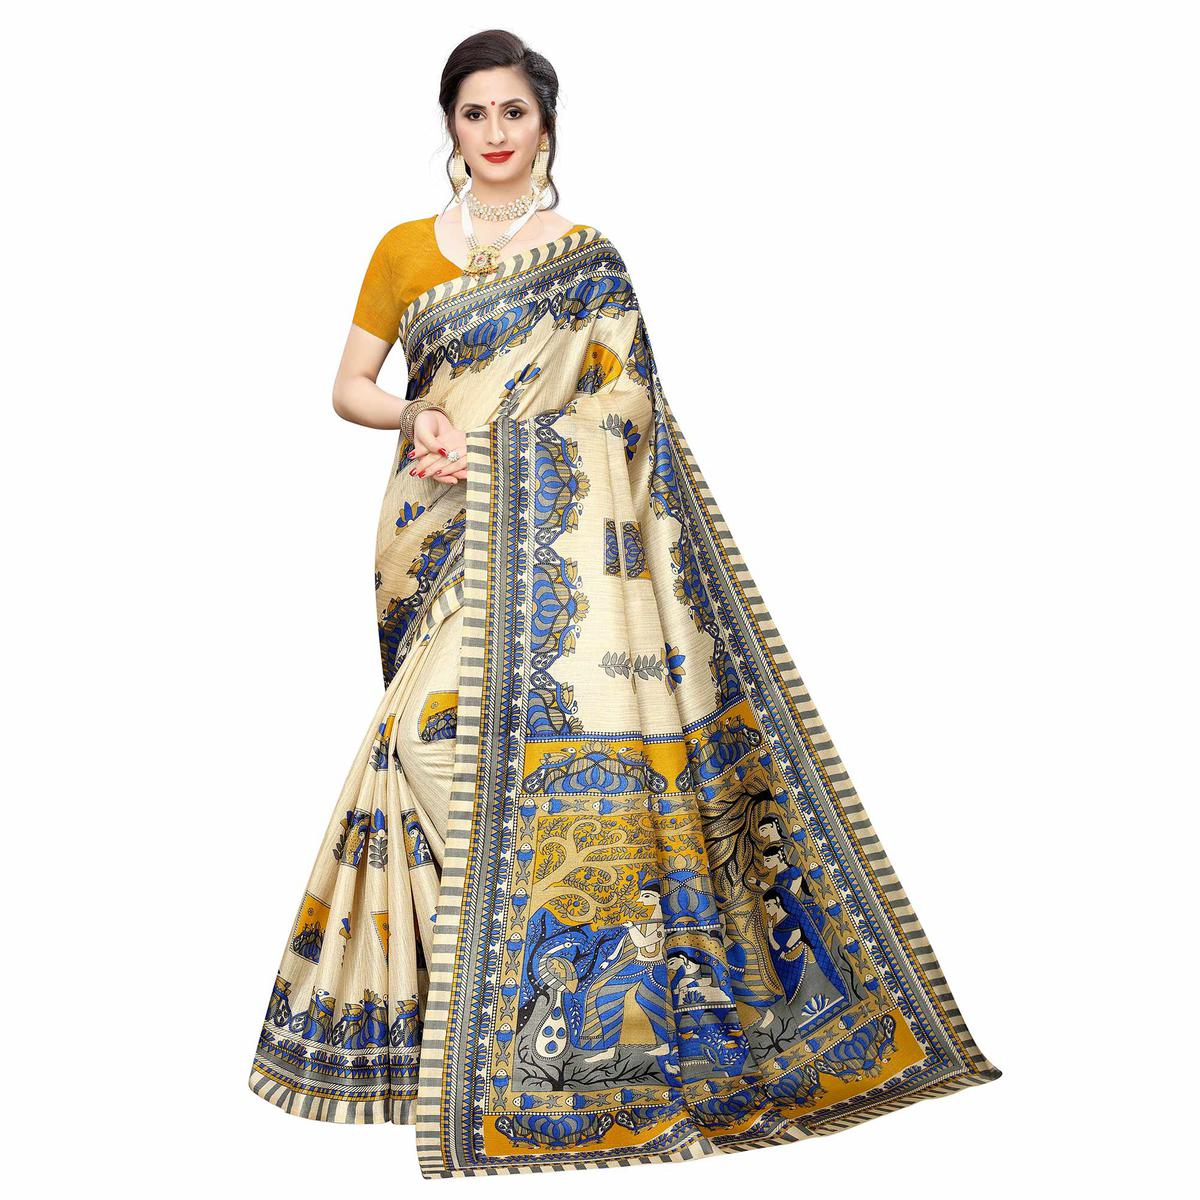 Exotic Beige-Yellow Colored Casual Wear Printed Cotton Silk Saree